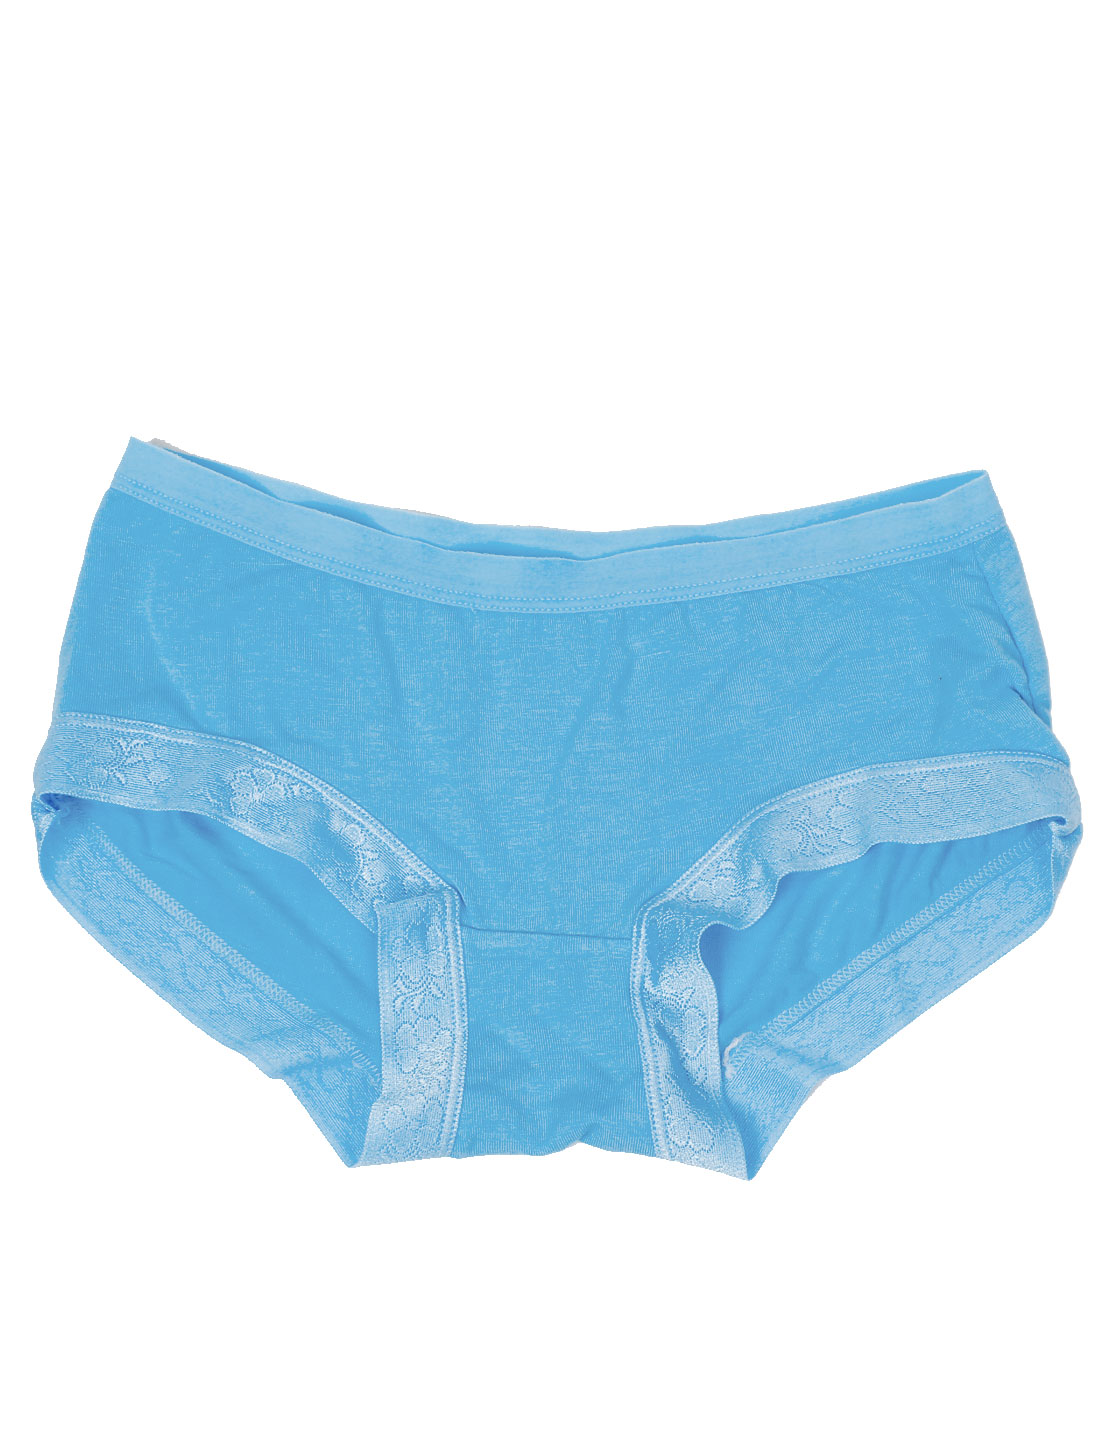 Ladies Lace Panel Elastic Fashion Underwear Briefs Turquoise XS